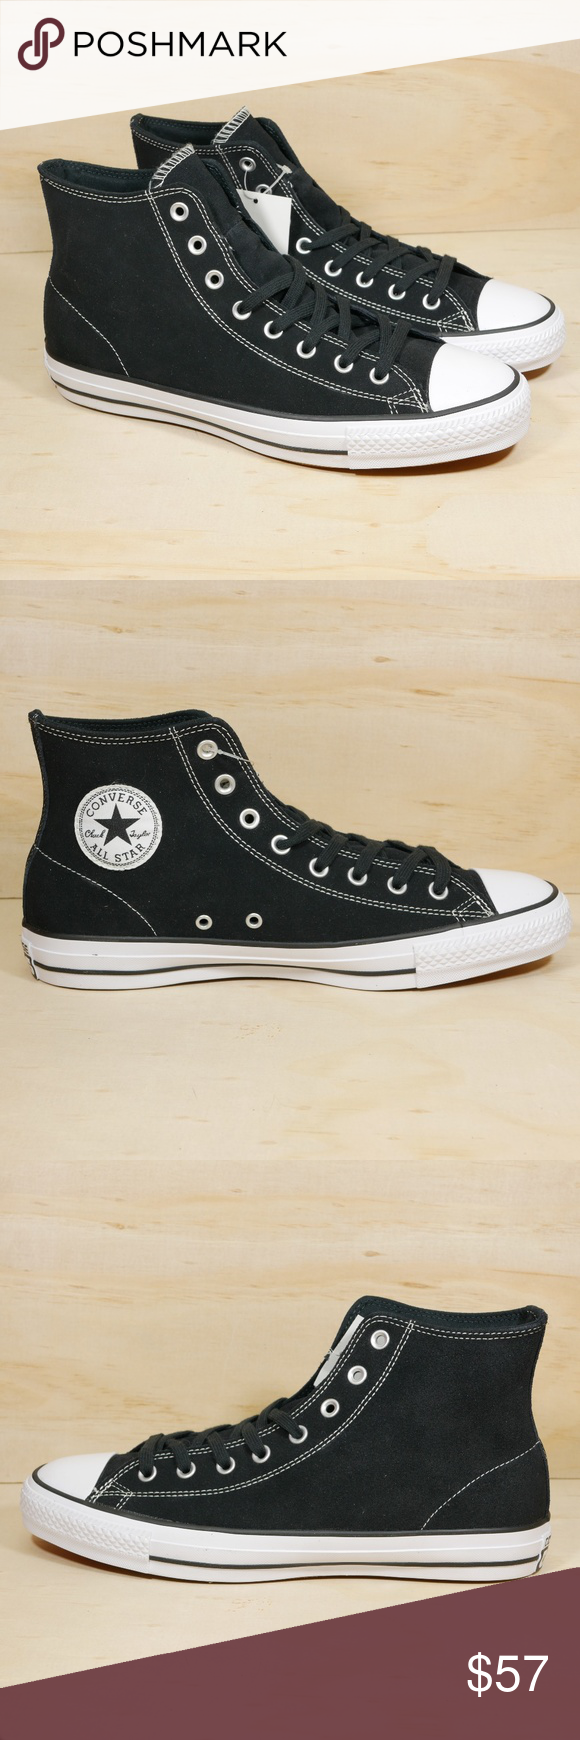 979eb3244eec Converse Chuck Taylor All Star Hi Black Suede Converse Chuck Taylor All Star  Hi Top Black